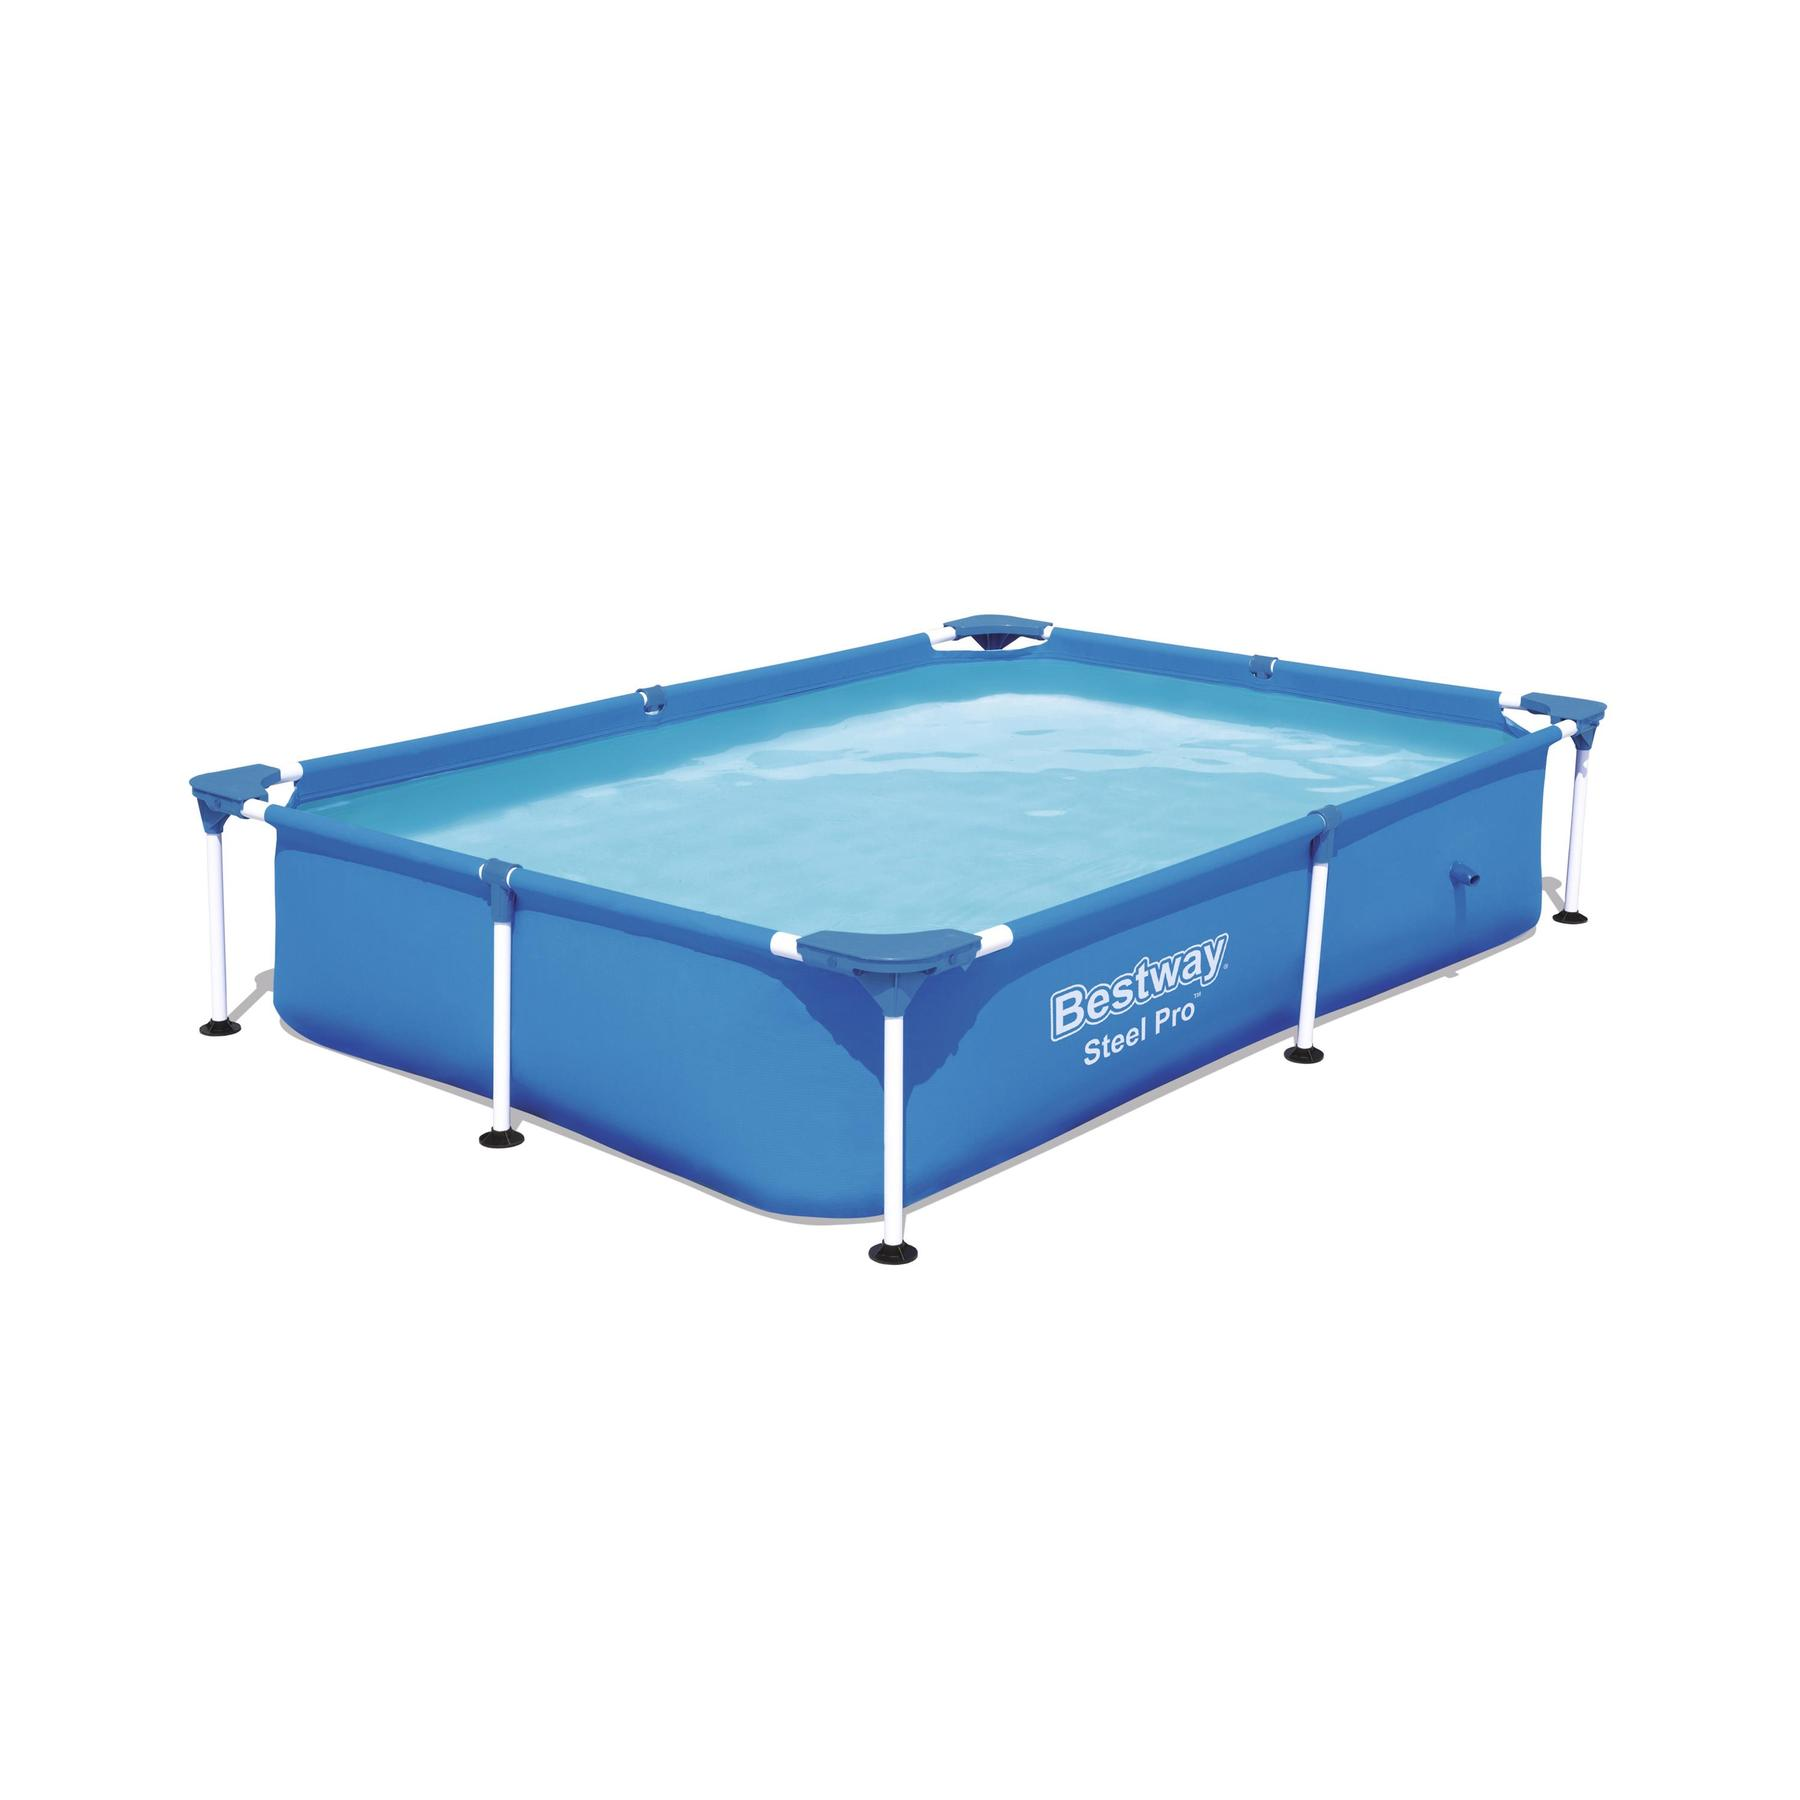 Scaffold Rectangular Pool 221 х150х43 Cm, 1200 L, Bestway Splash Jr. Frame Pool, Item No. 56401